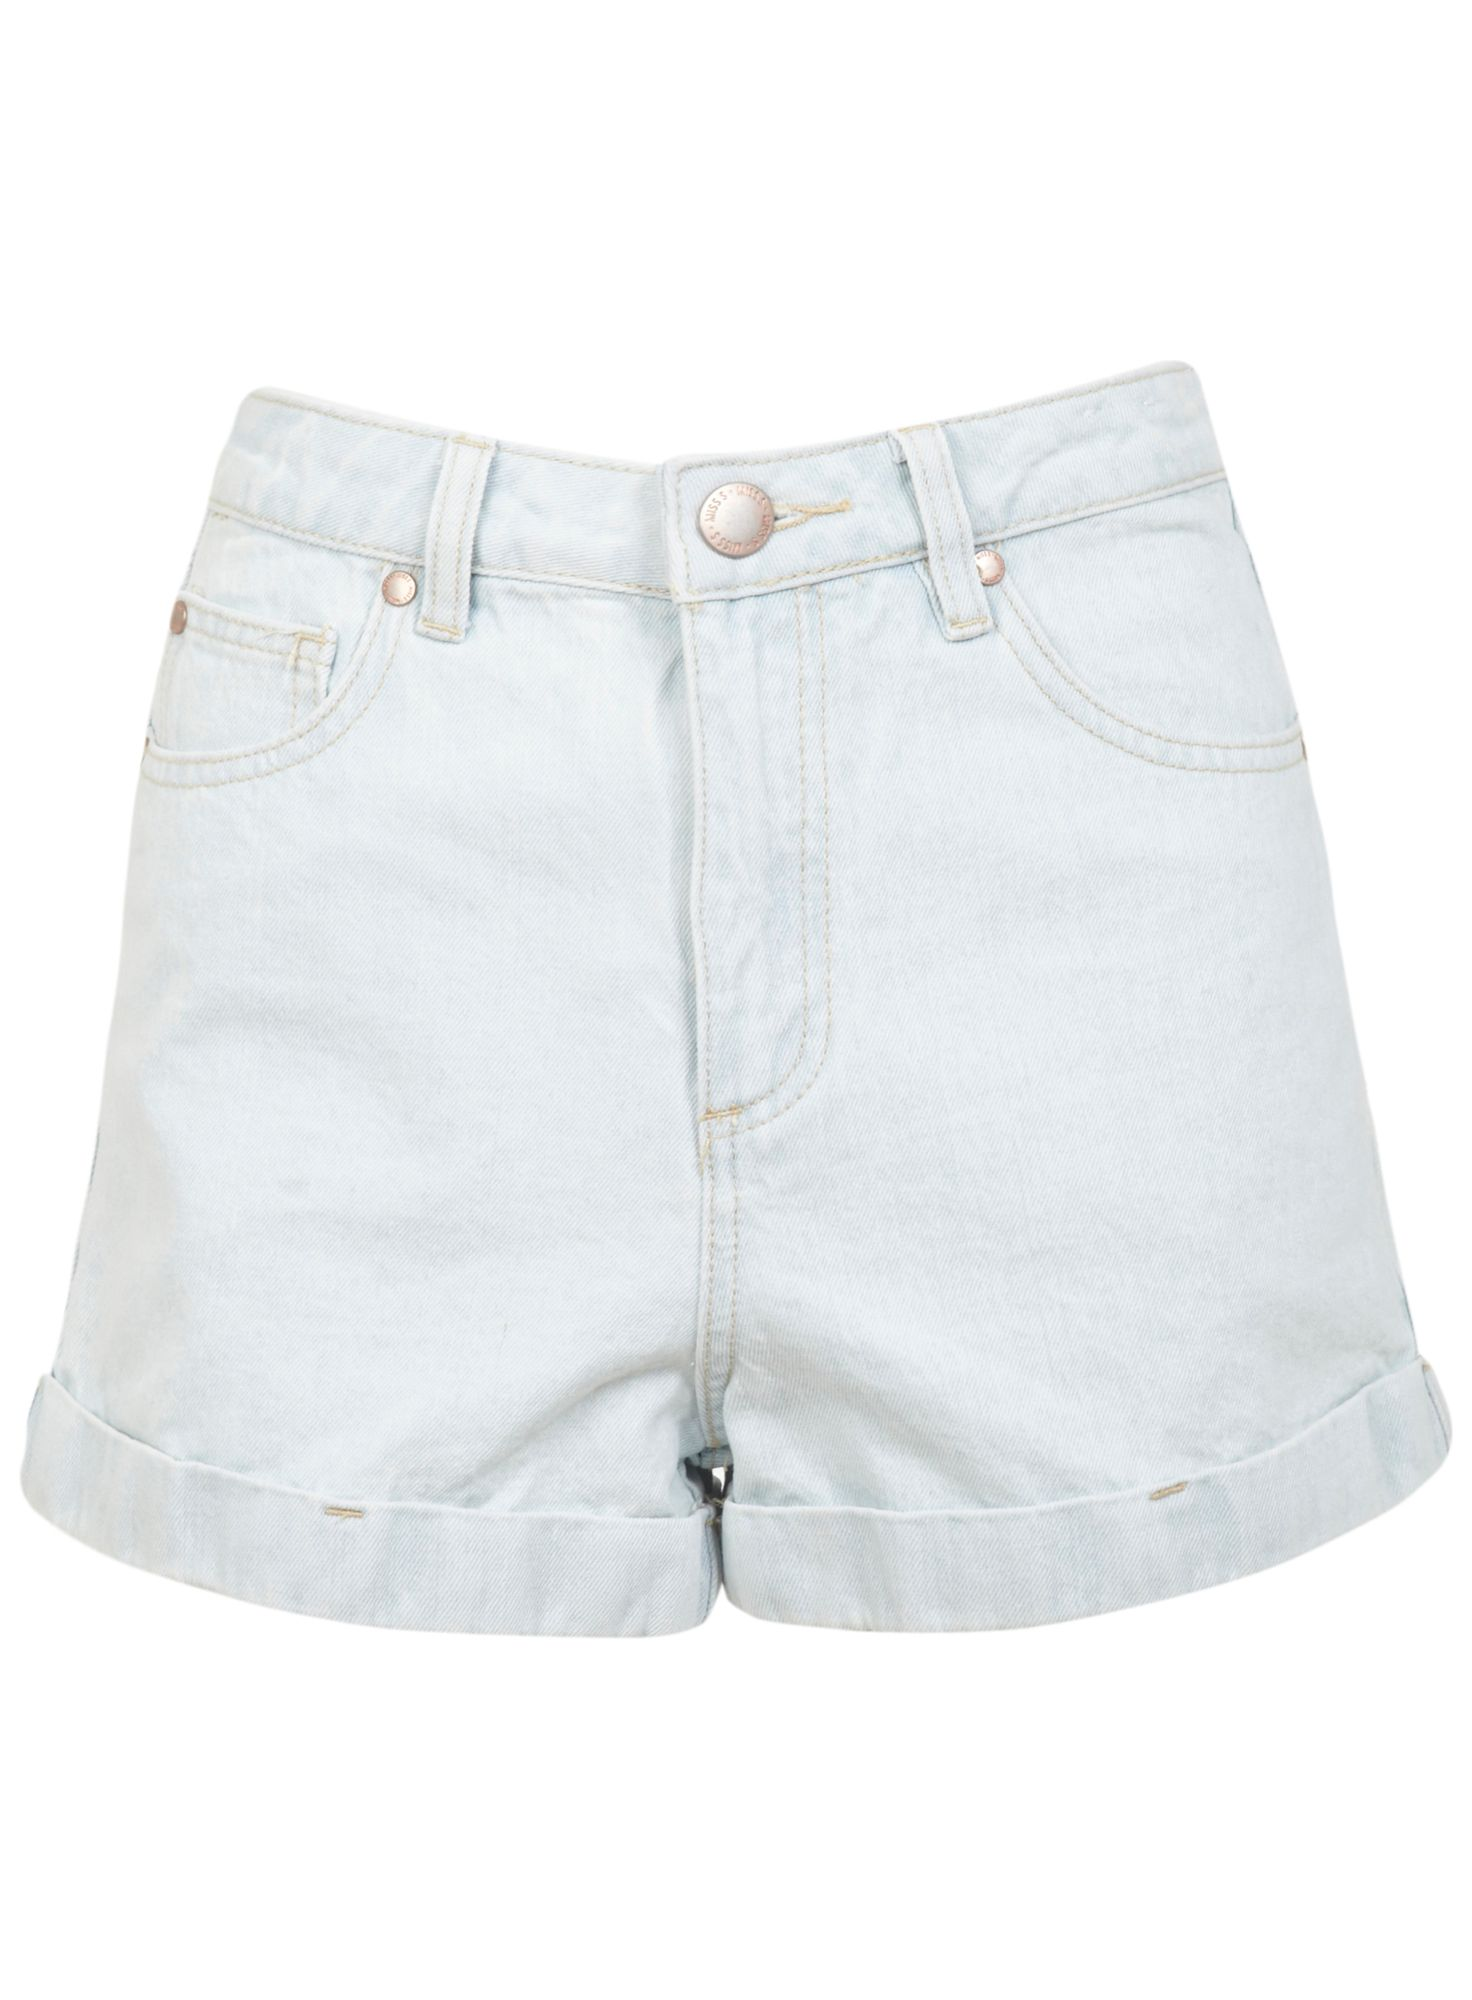 Bleach high waist denim short